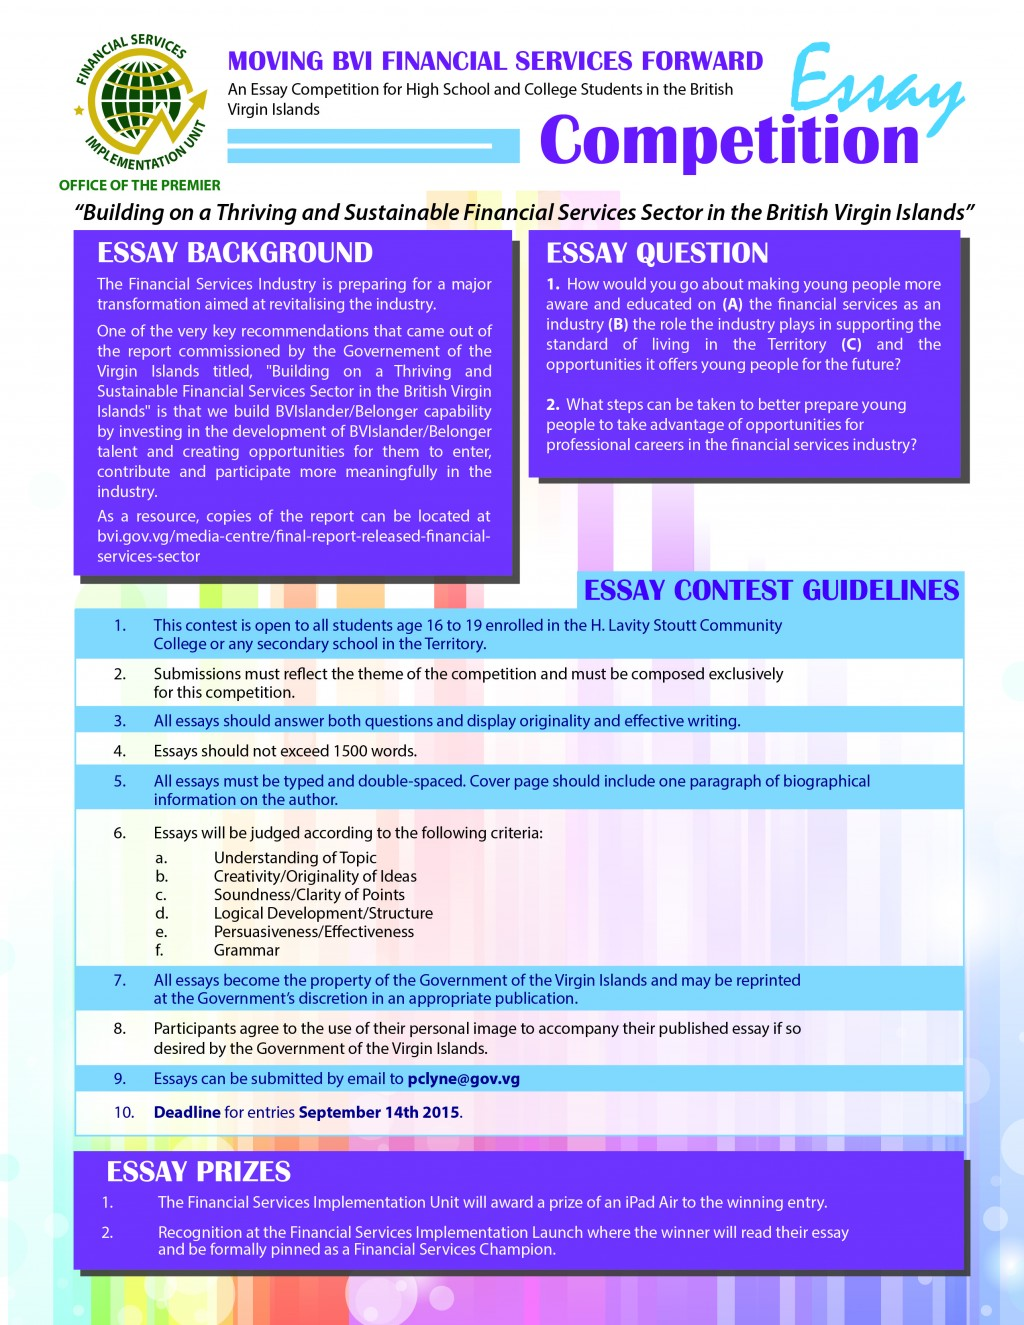 003 Essay Contests For High School Students Example Essays On Competition Oxbridge College 344  Financial Services Targets Staggering 2017Large